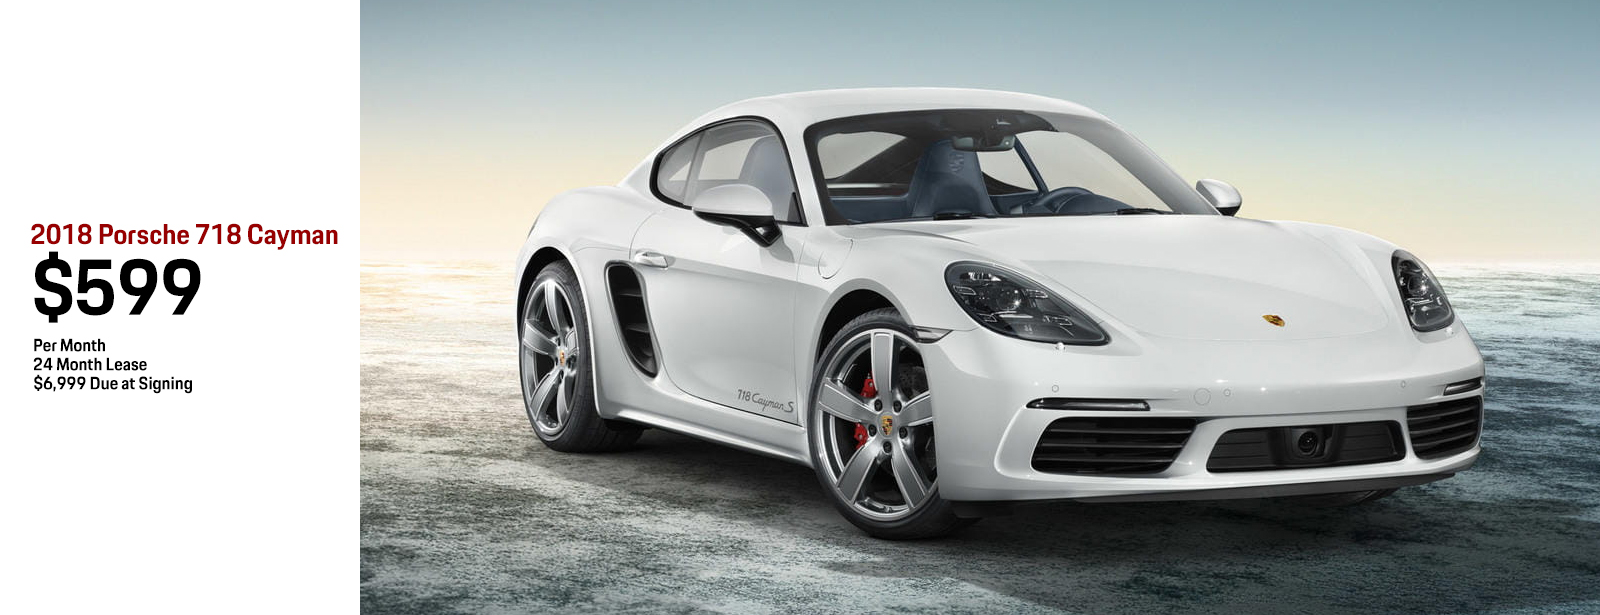 Lease a 2018 Porsche 718 Cayman for a low monthly payment in Chandler, AZ